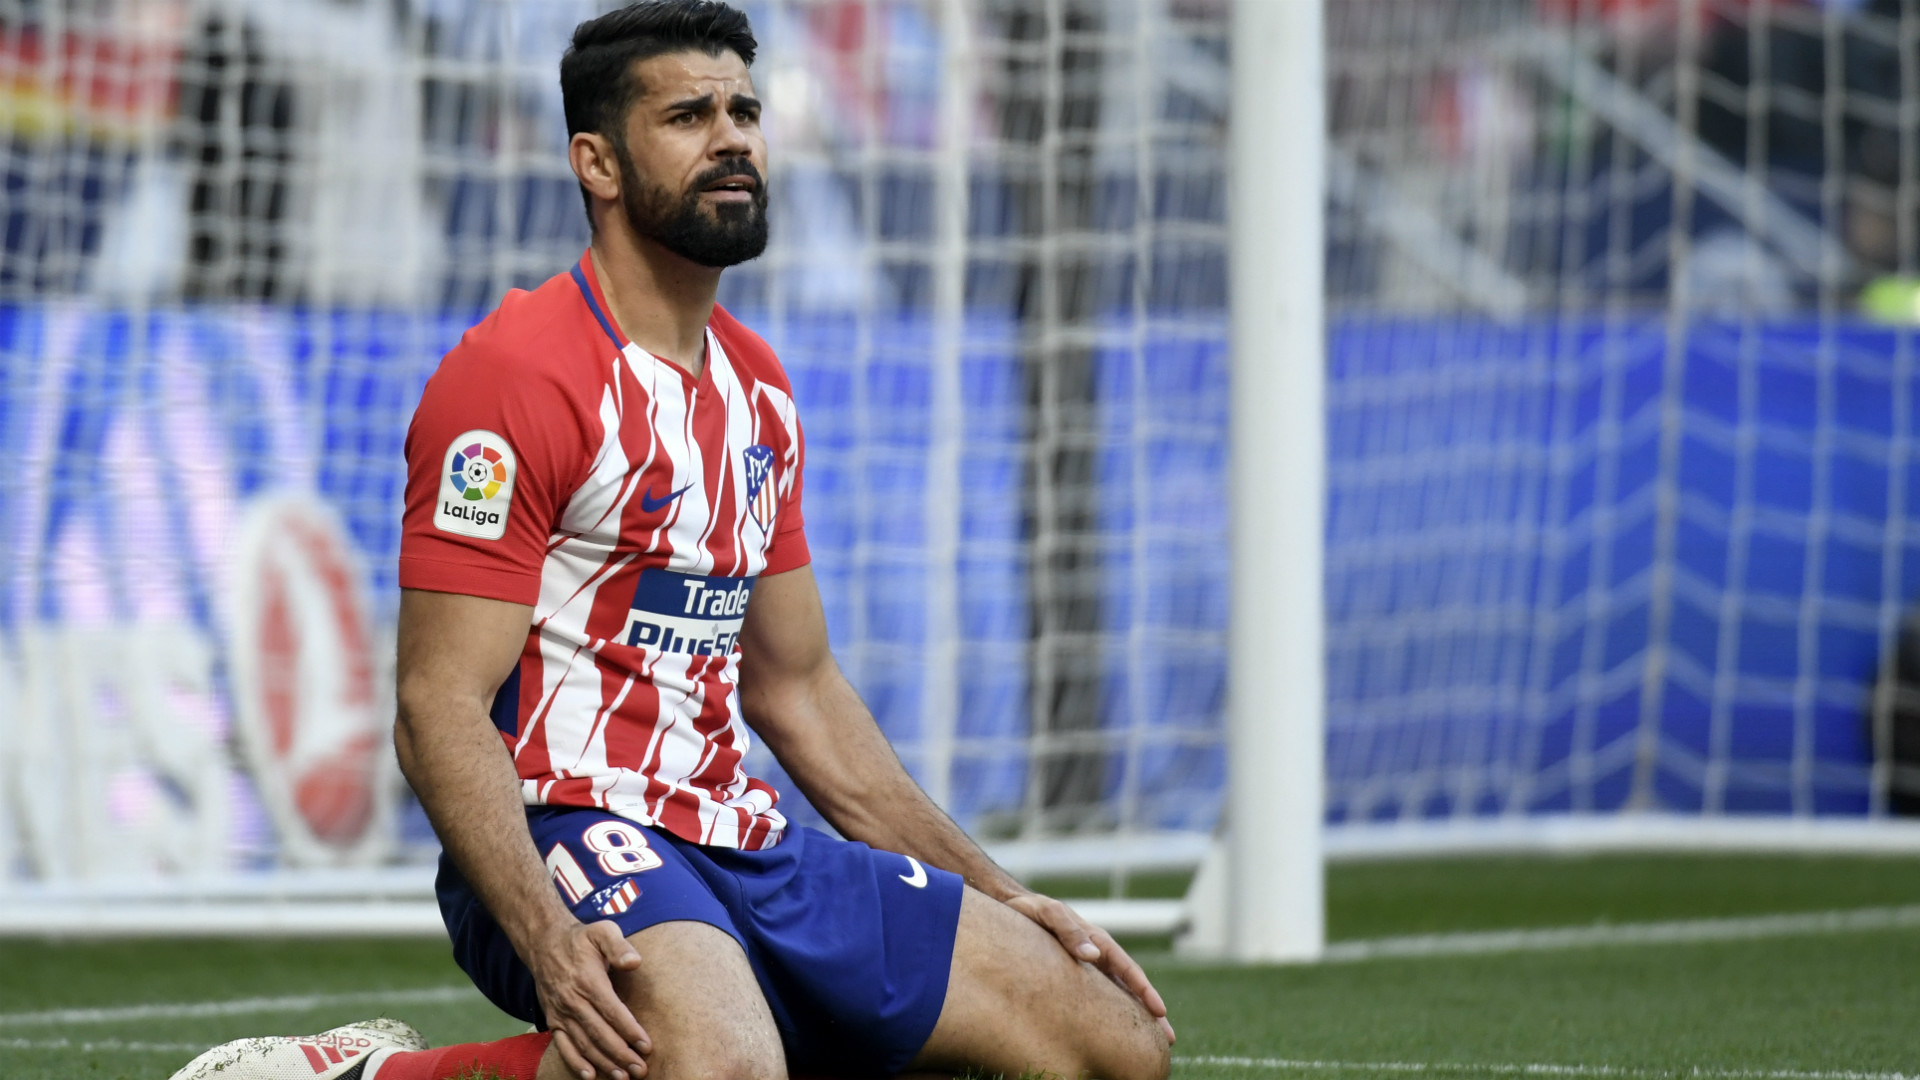 Diego Costa Atletico Madrid Athletic Club LaLiga